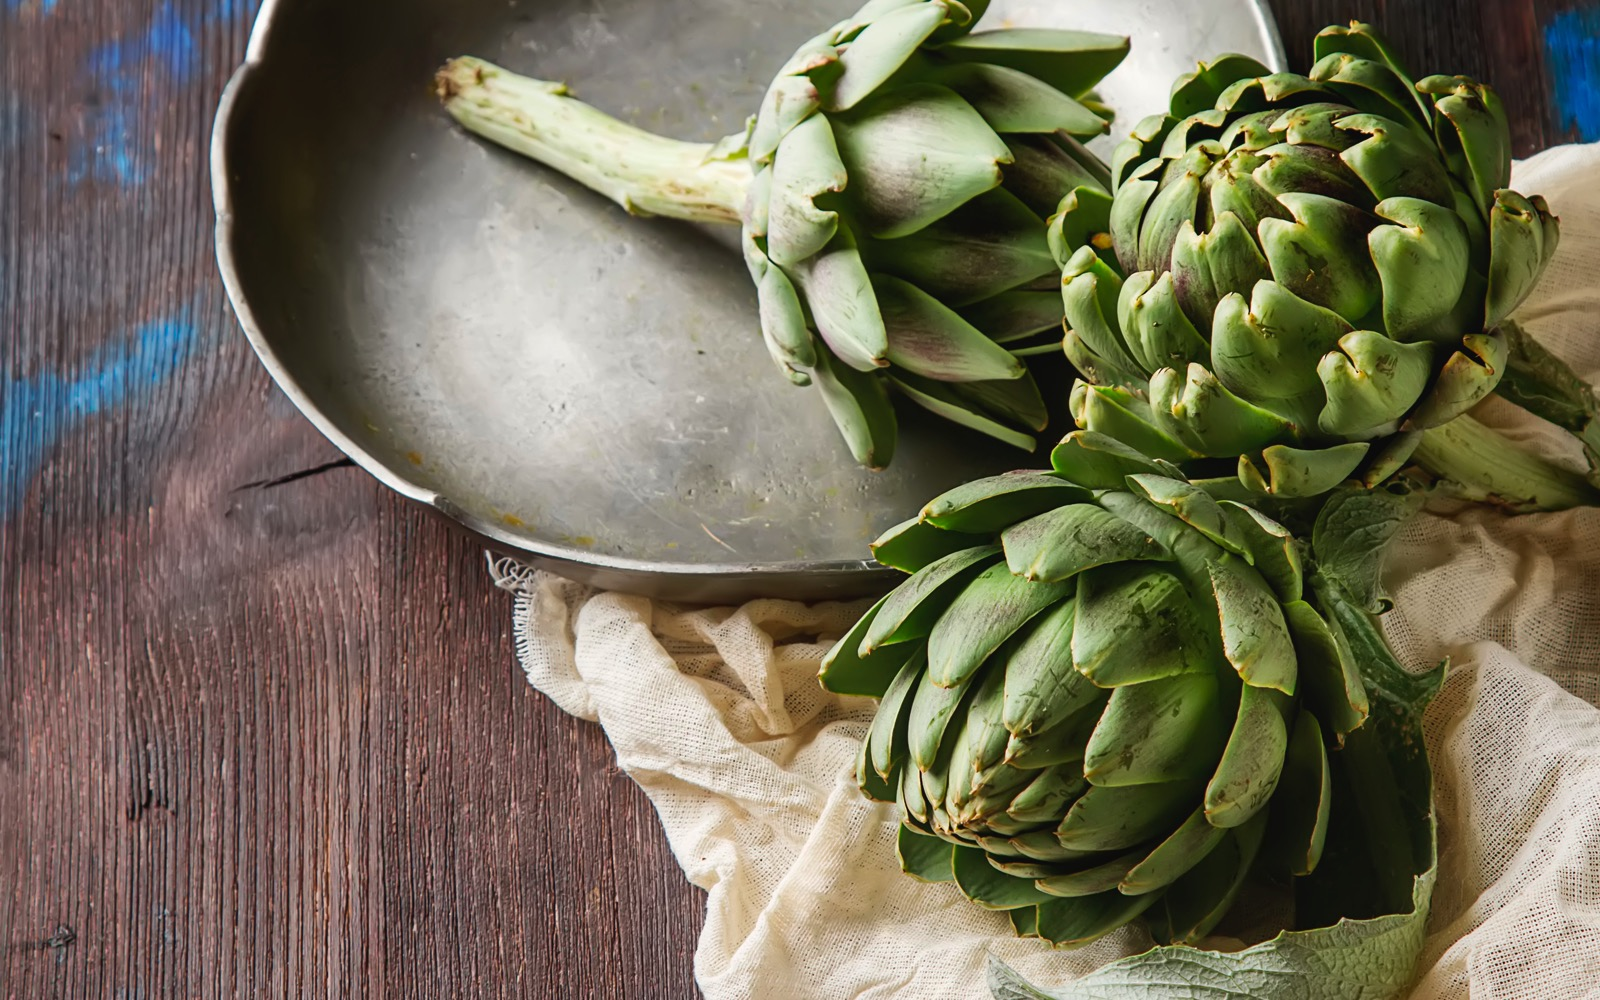 High quality artichokes. World-Class Ingredients in your Kitchen. Khayyan Specialty Foods, importers, manufacturers and distributors of fine Products from Spain in West New York, NJ.